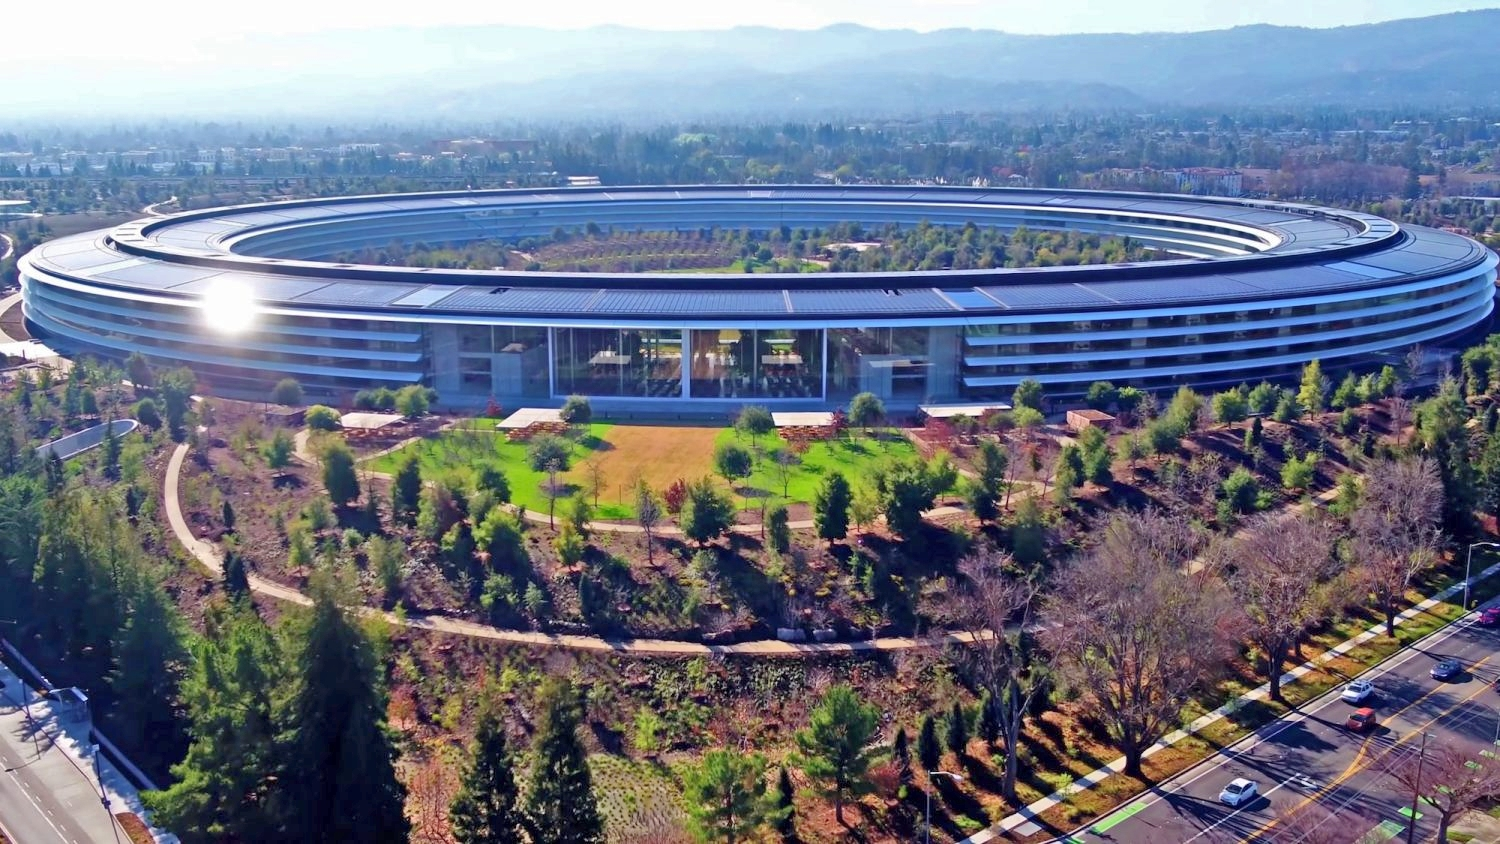 Apple Park in Cupertino, designed by Norman Foster, the vision of co-founder Steve Jobs.  Apple became the world's first trillion-dollar public company this month.